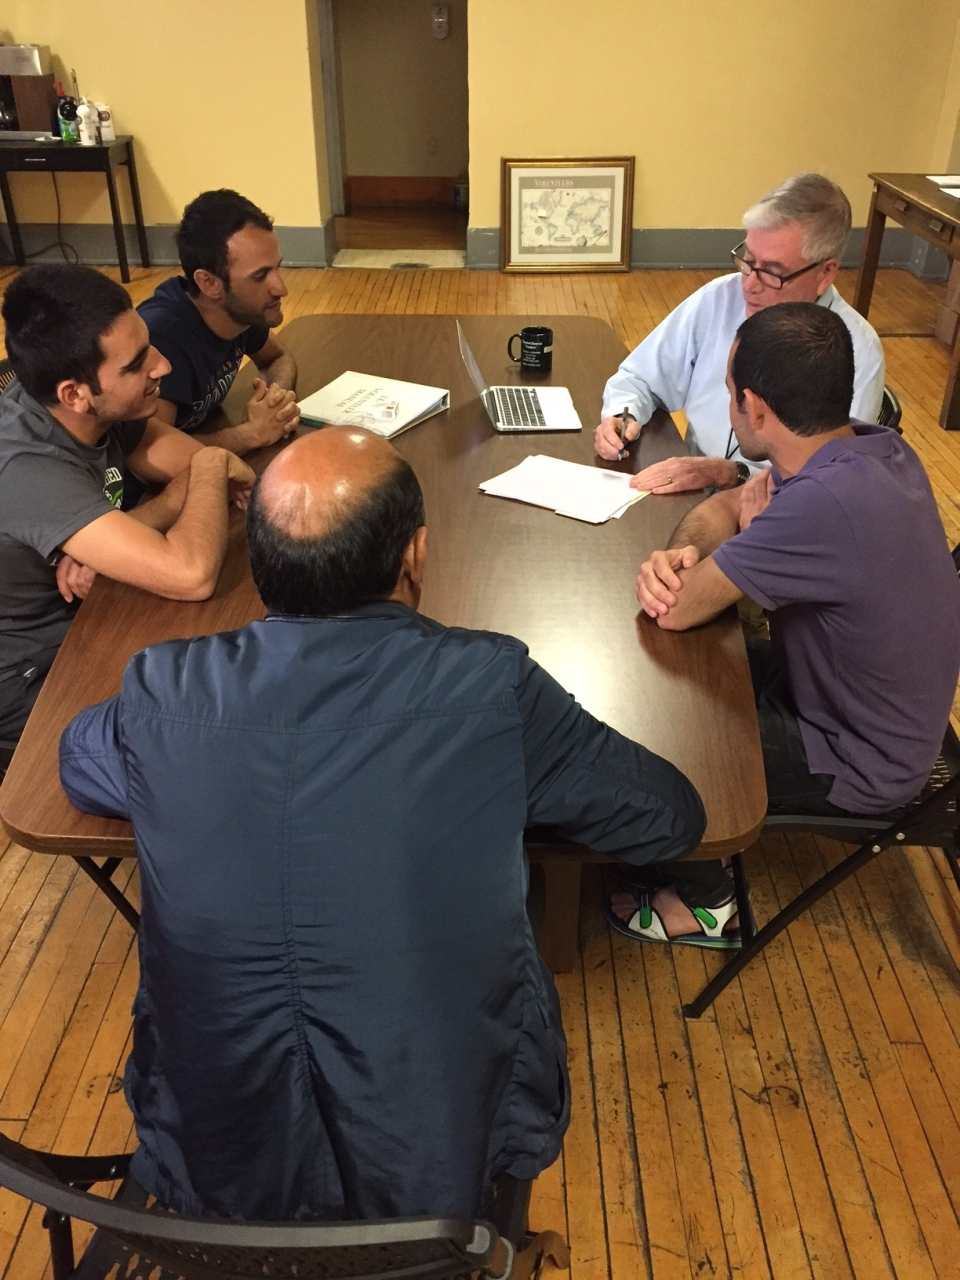 An intake volunteer talks to asylum seekers at Vive in Buffalo, New York, on Thursday, April 20. (Peter Akman / CTV News)